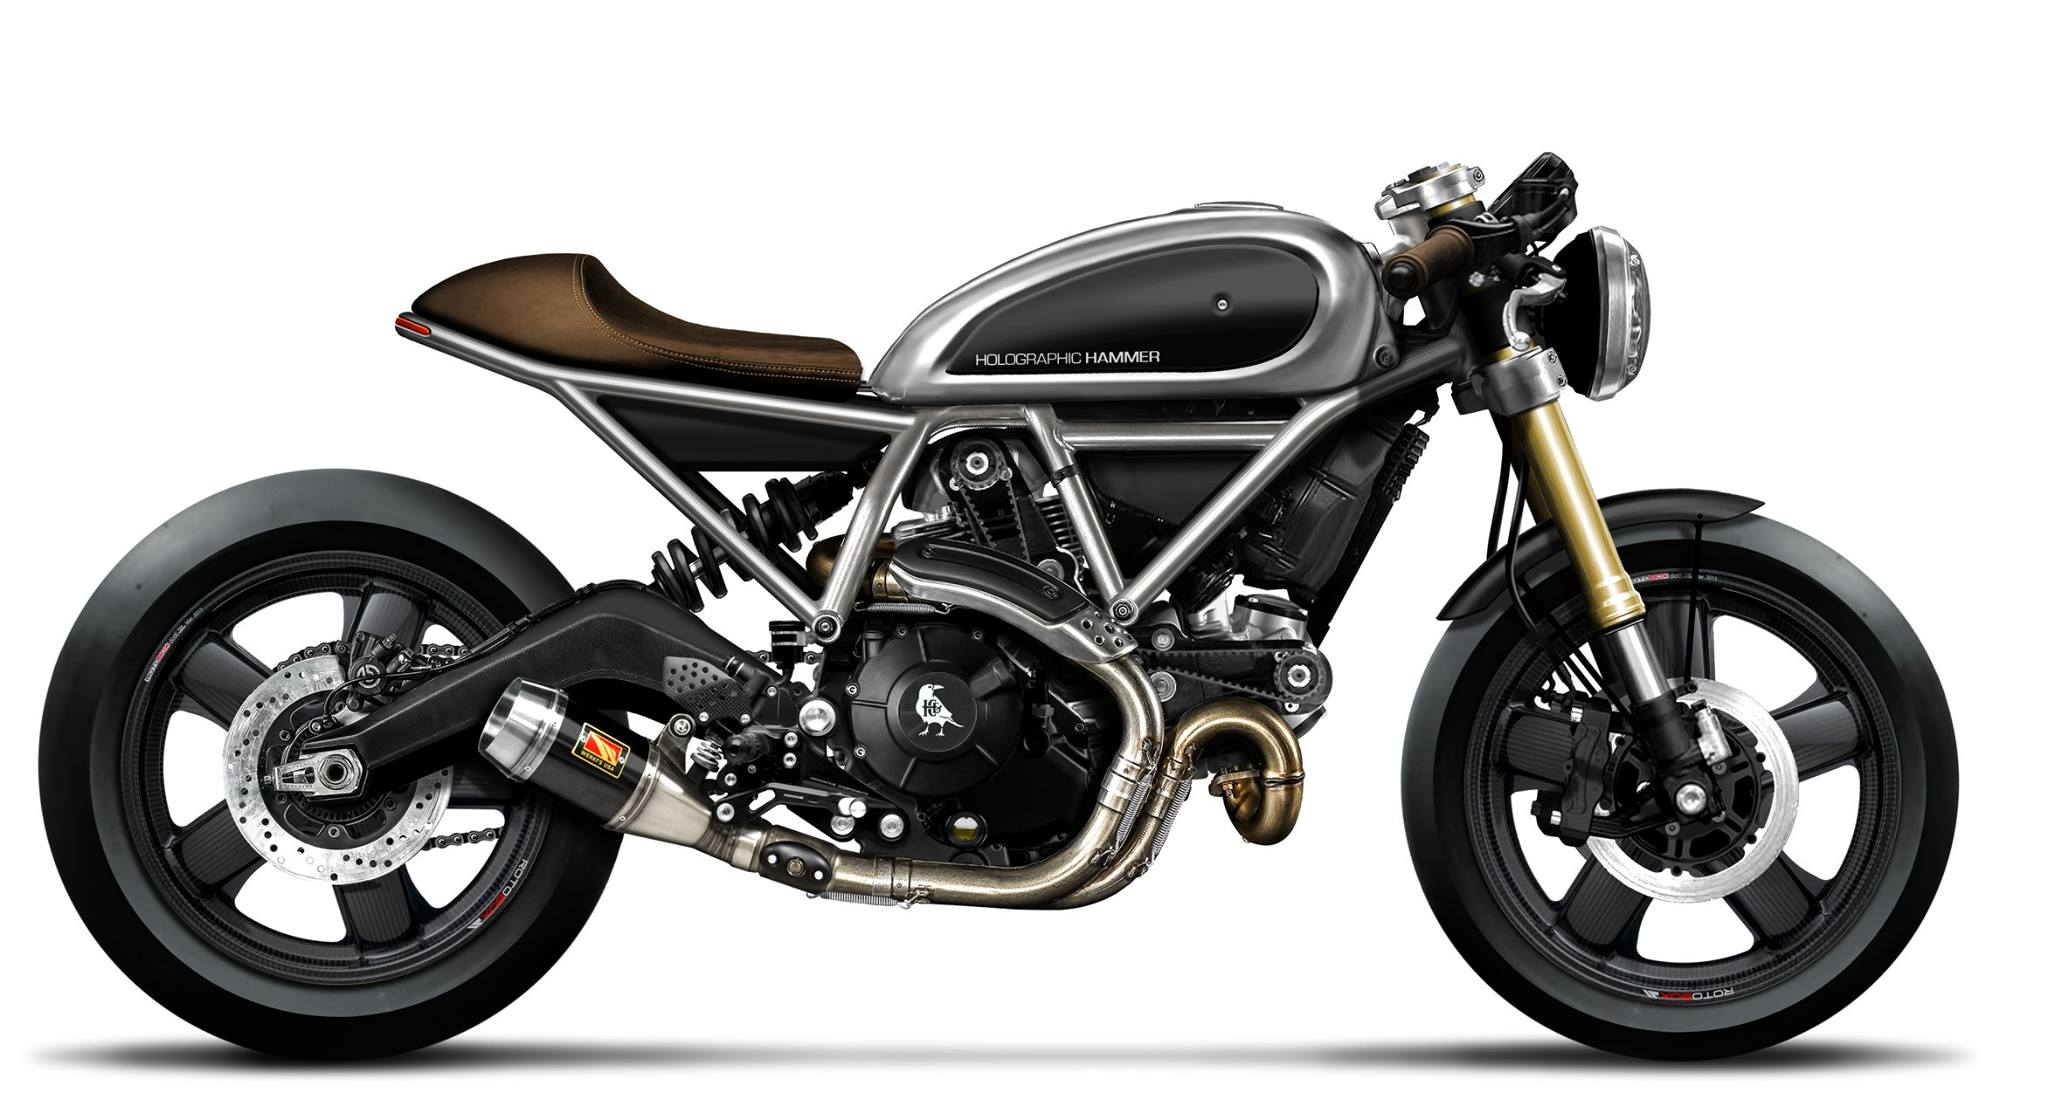 ducati scrambler project hero 01 by holographic hammer is. Black Bedroom Furniture Sets. Home Design Ideas